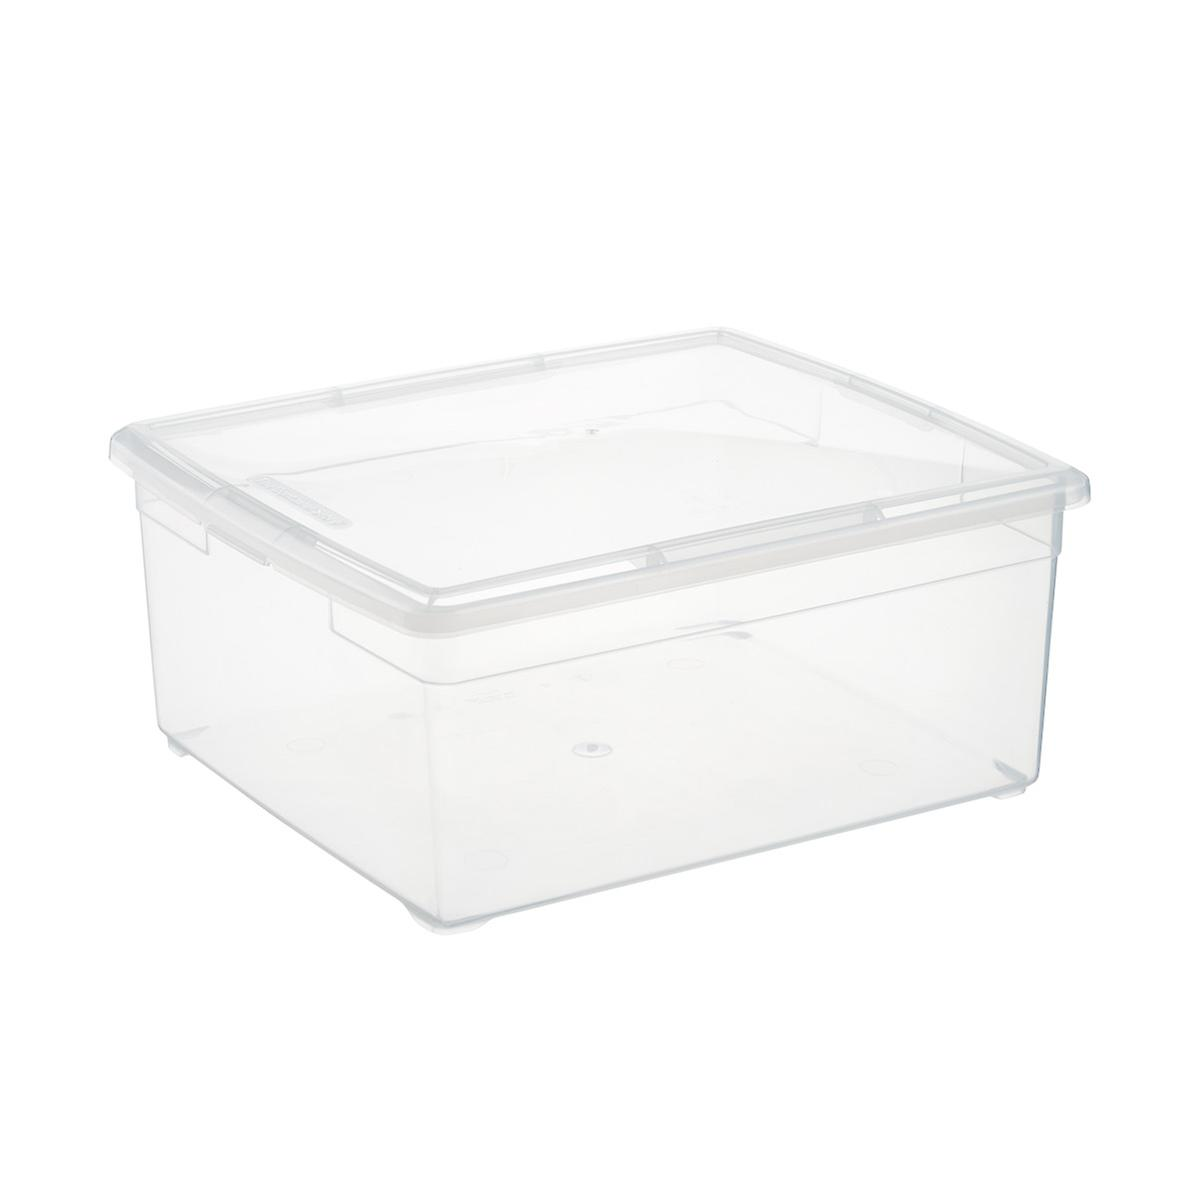 Clear Plastic Storage Boxes Our Clear Storage Boxes The